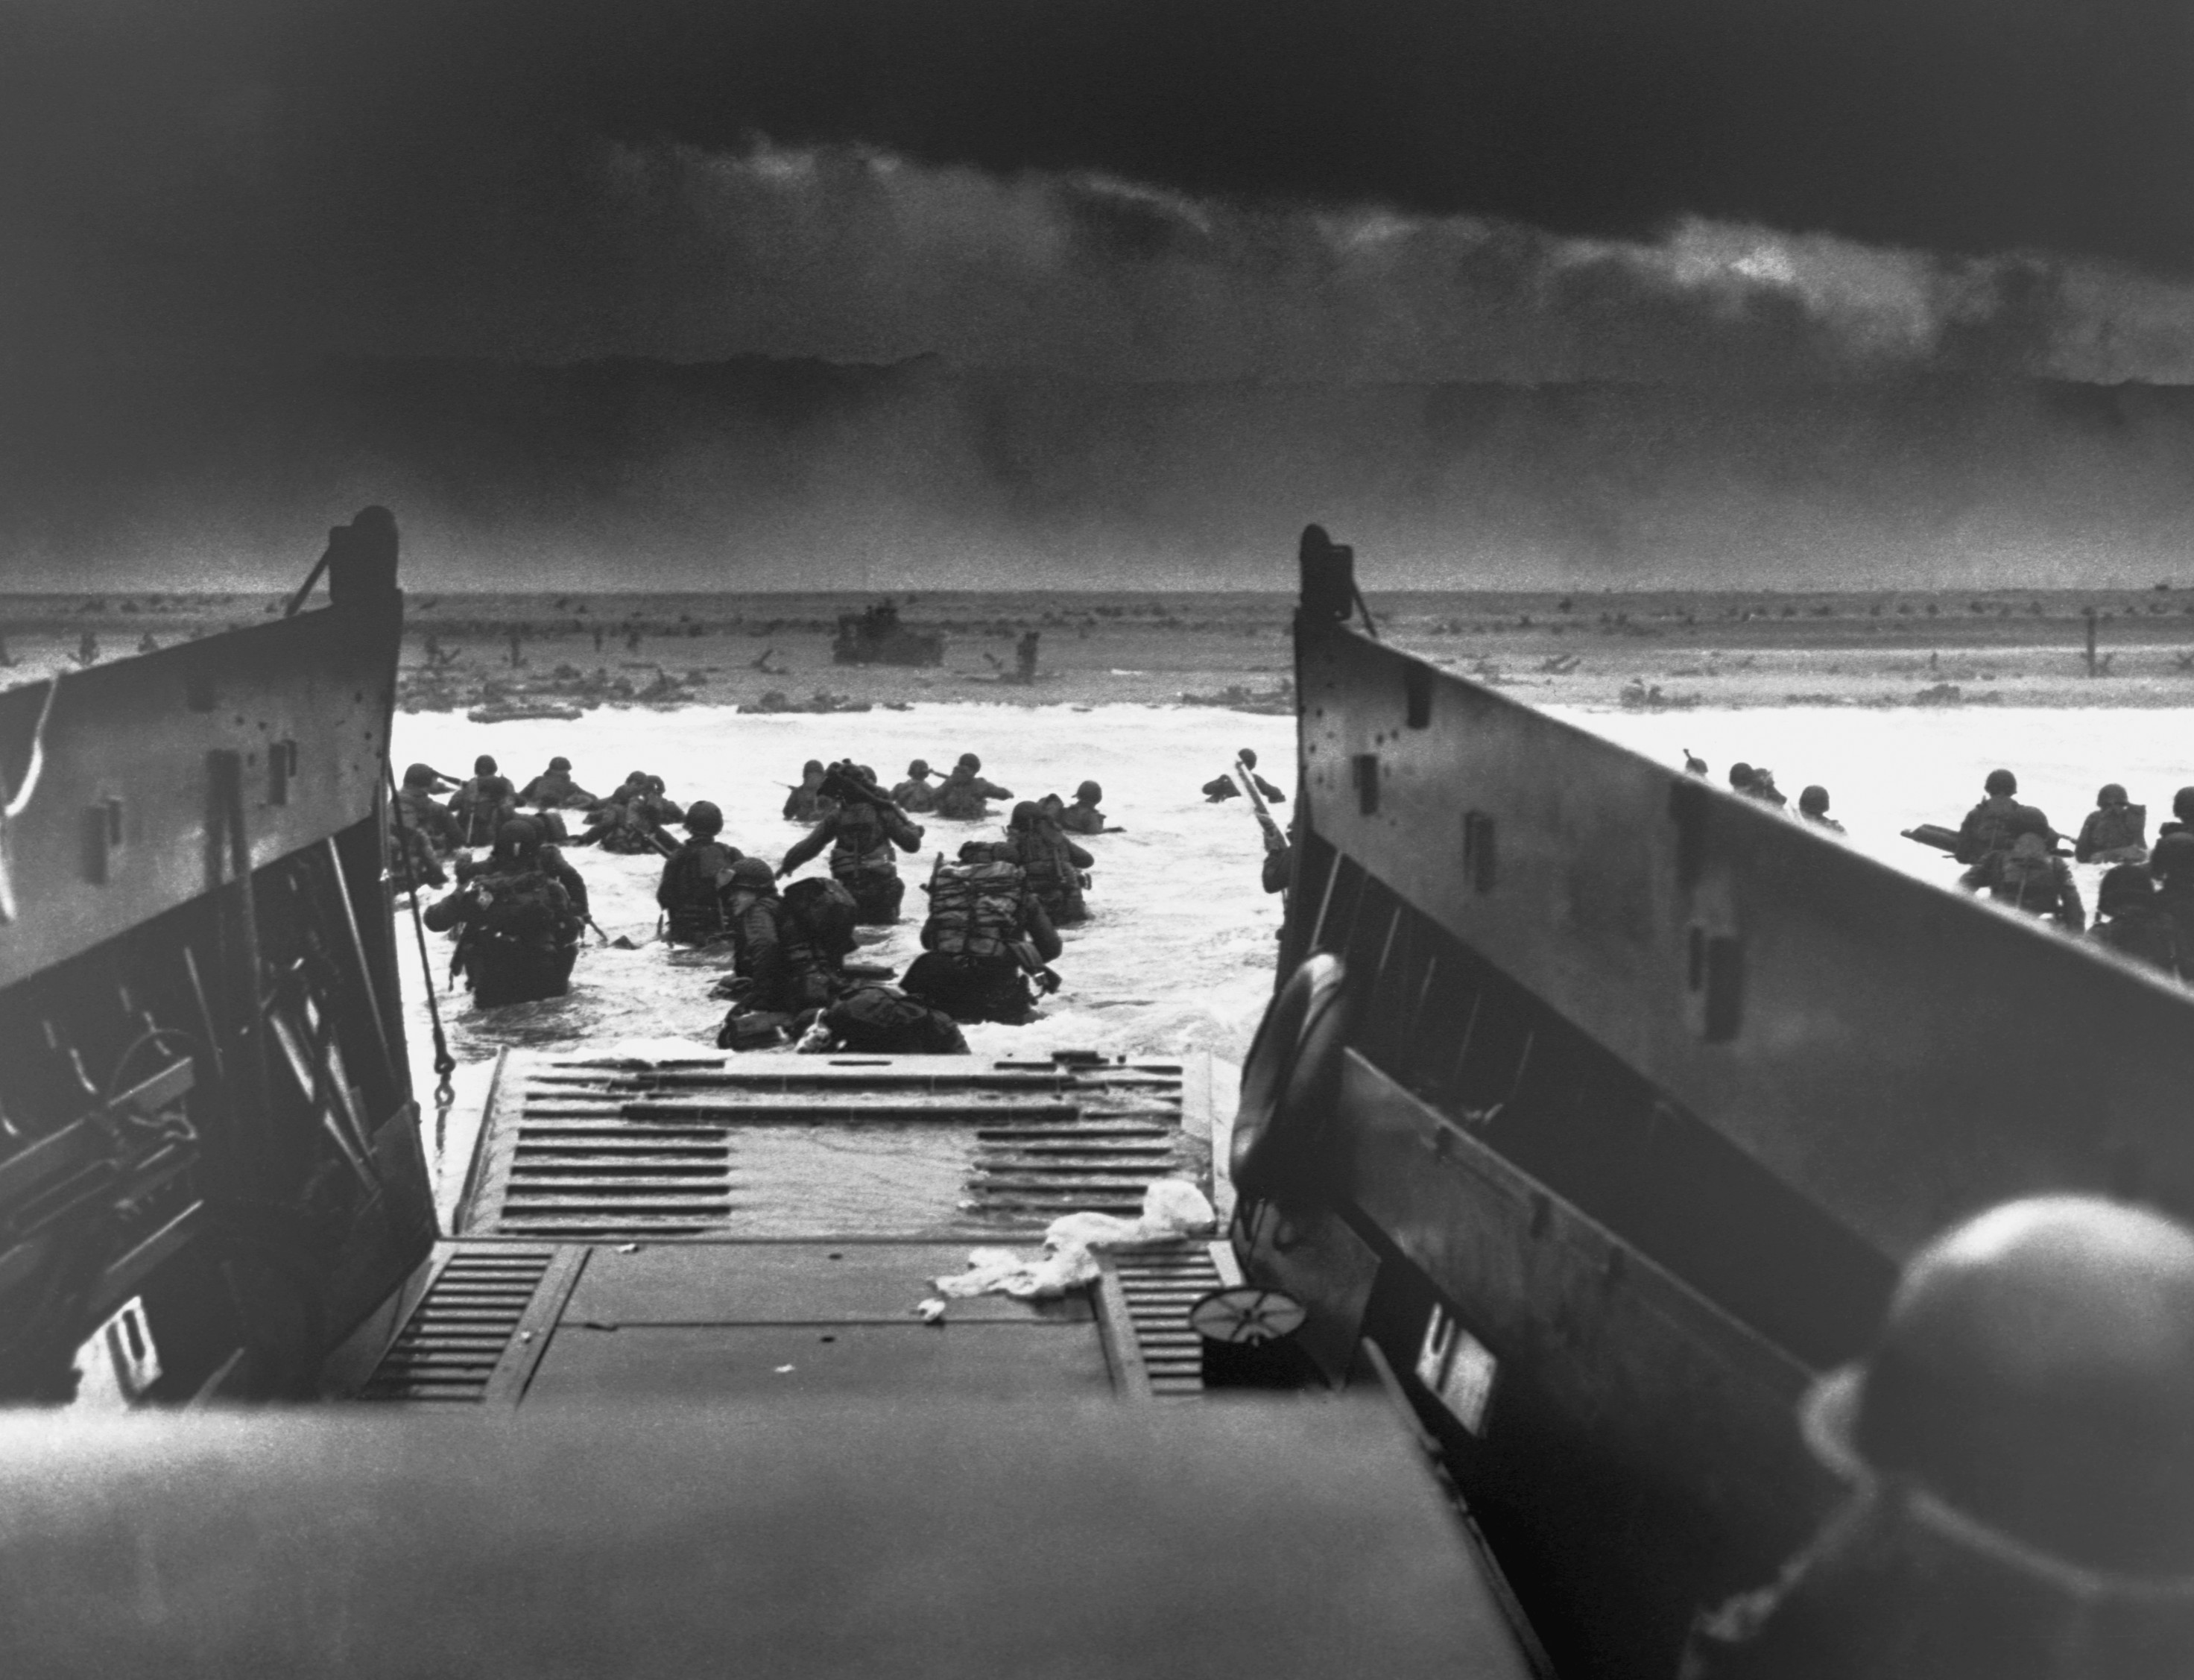 06 Jun 1944, France --- On D-Day, June 6, 1944, a landing craft just vacated by invasion troops points towards a fortified beach on the Normandy Coast. American soldiers wade to shore fighting heavy machine gun fire. --- Image by © CORBIS